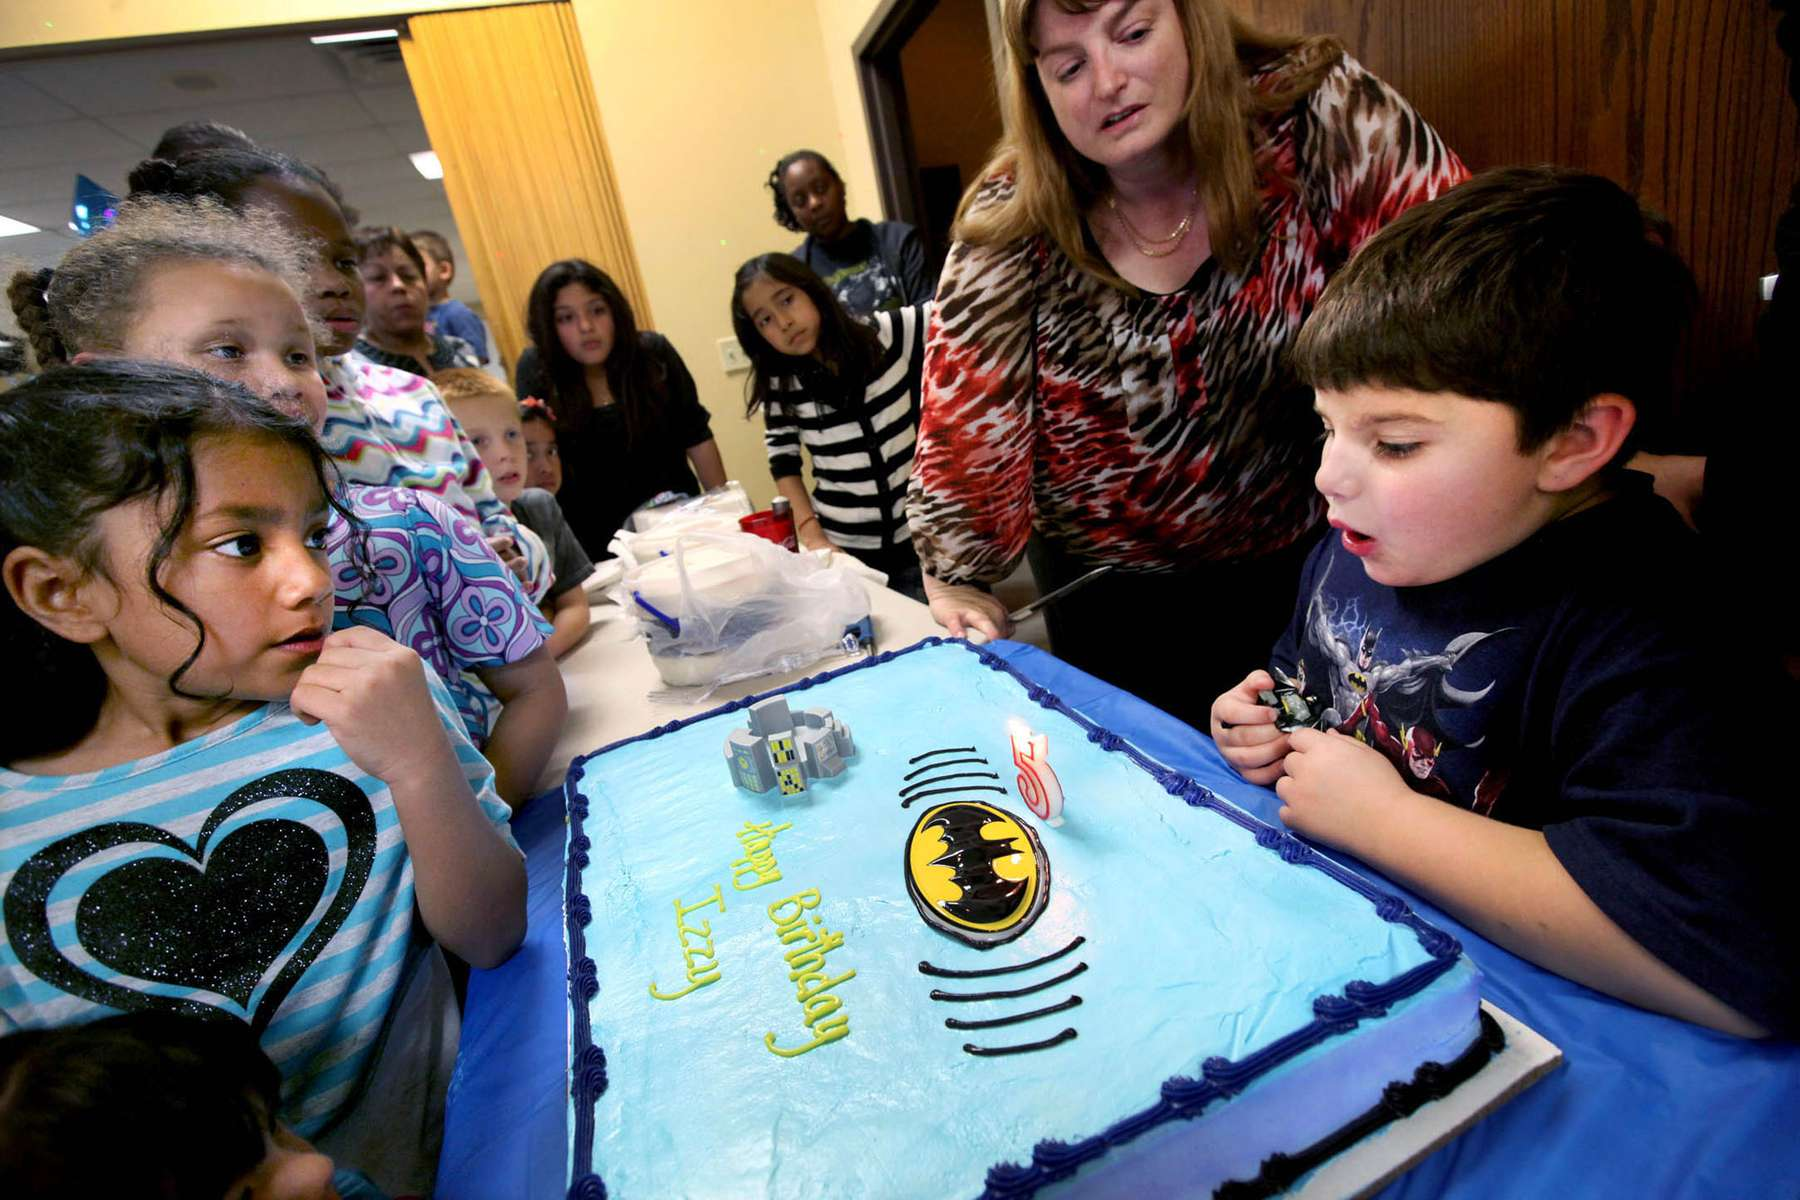 Izzy blows out his birthday candle during his Batman themed birthday party. He has just turned five and will soon be stepping out of the relative safe bubble in terms of dealing with gender.